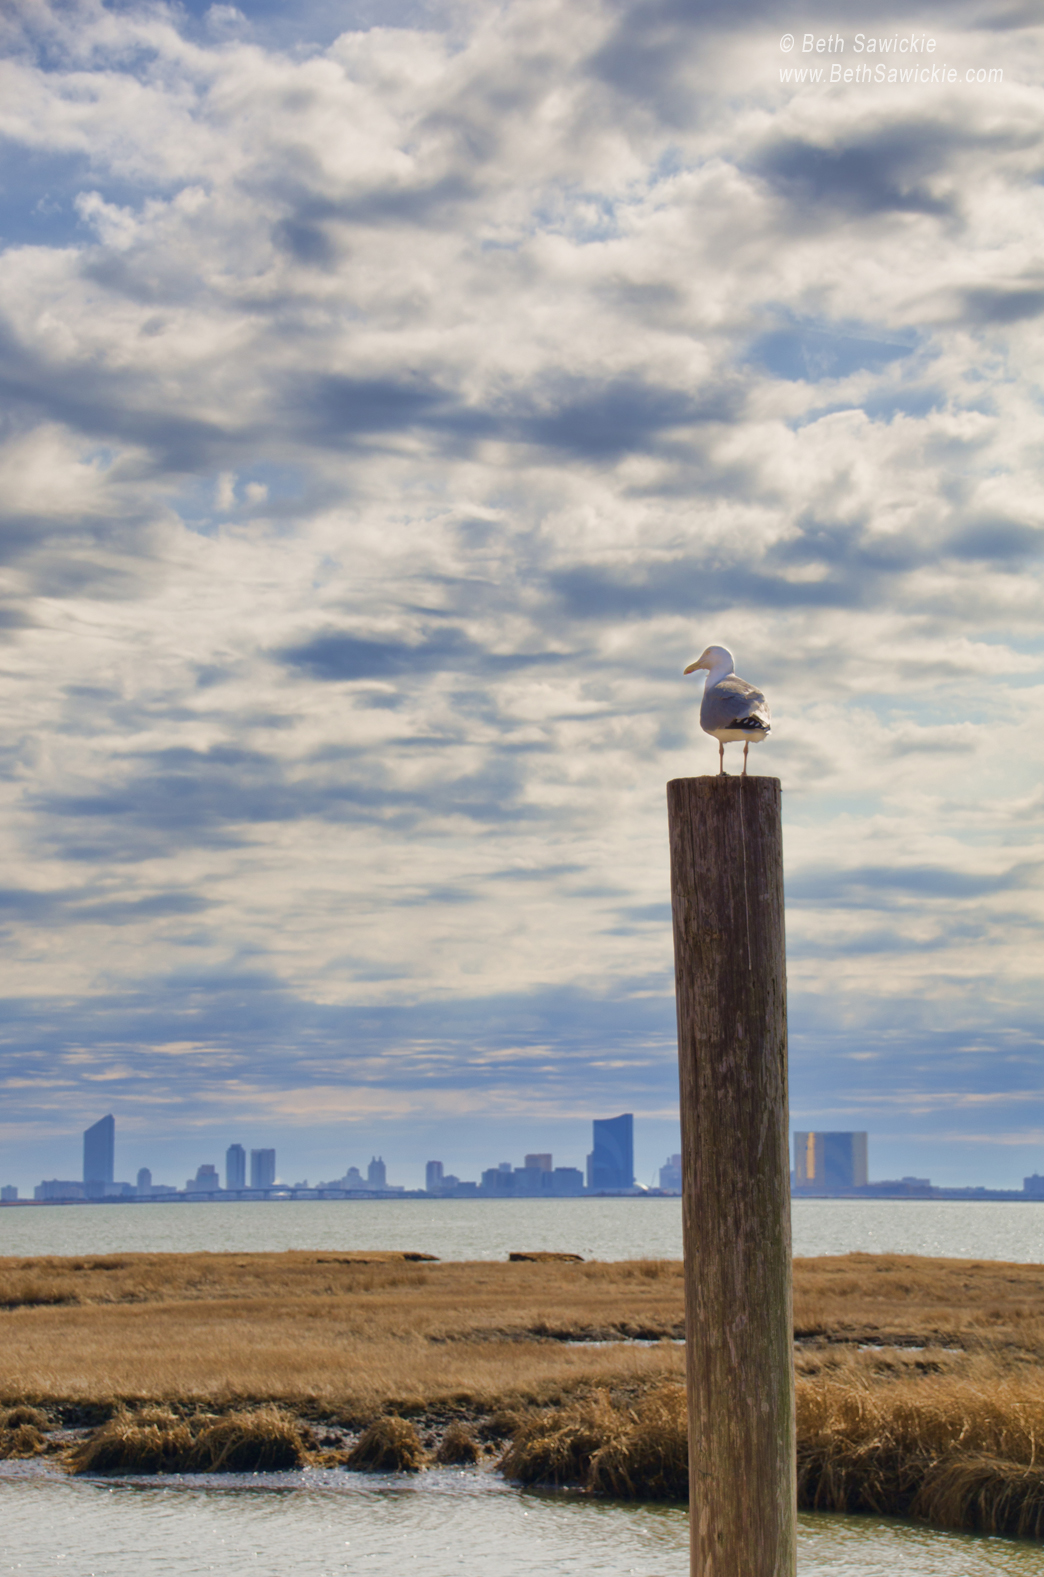 "Image by Beth Sawickie www.BethSawickie.com/seagull-overlooking-atlantic-city ""Seagull Overlooking Atlantic City, NJ"""